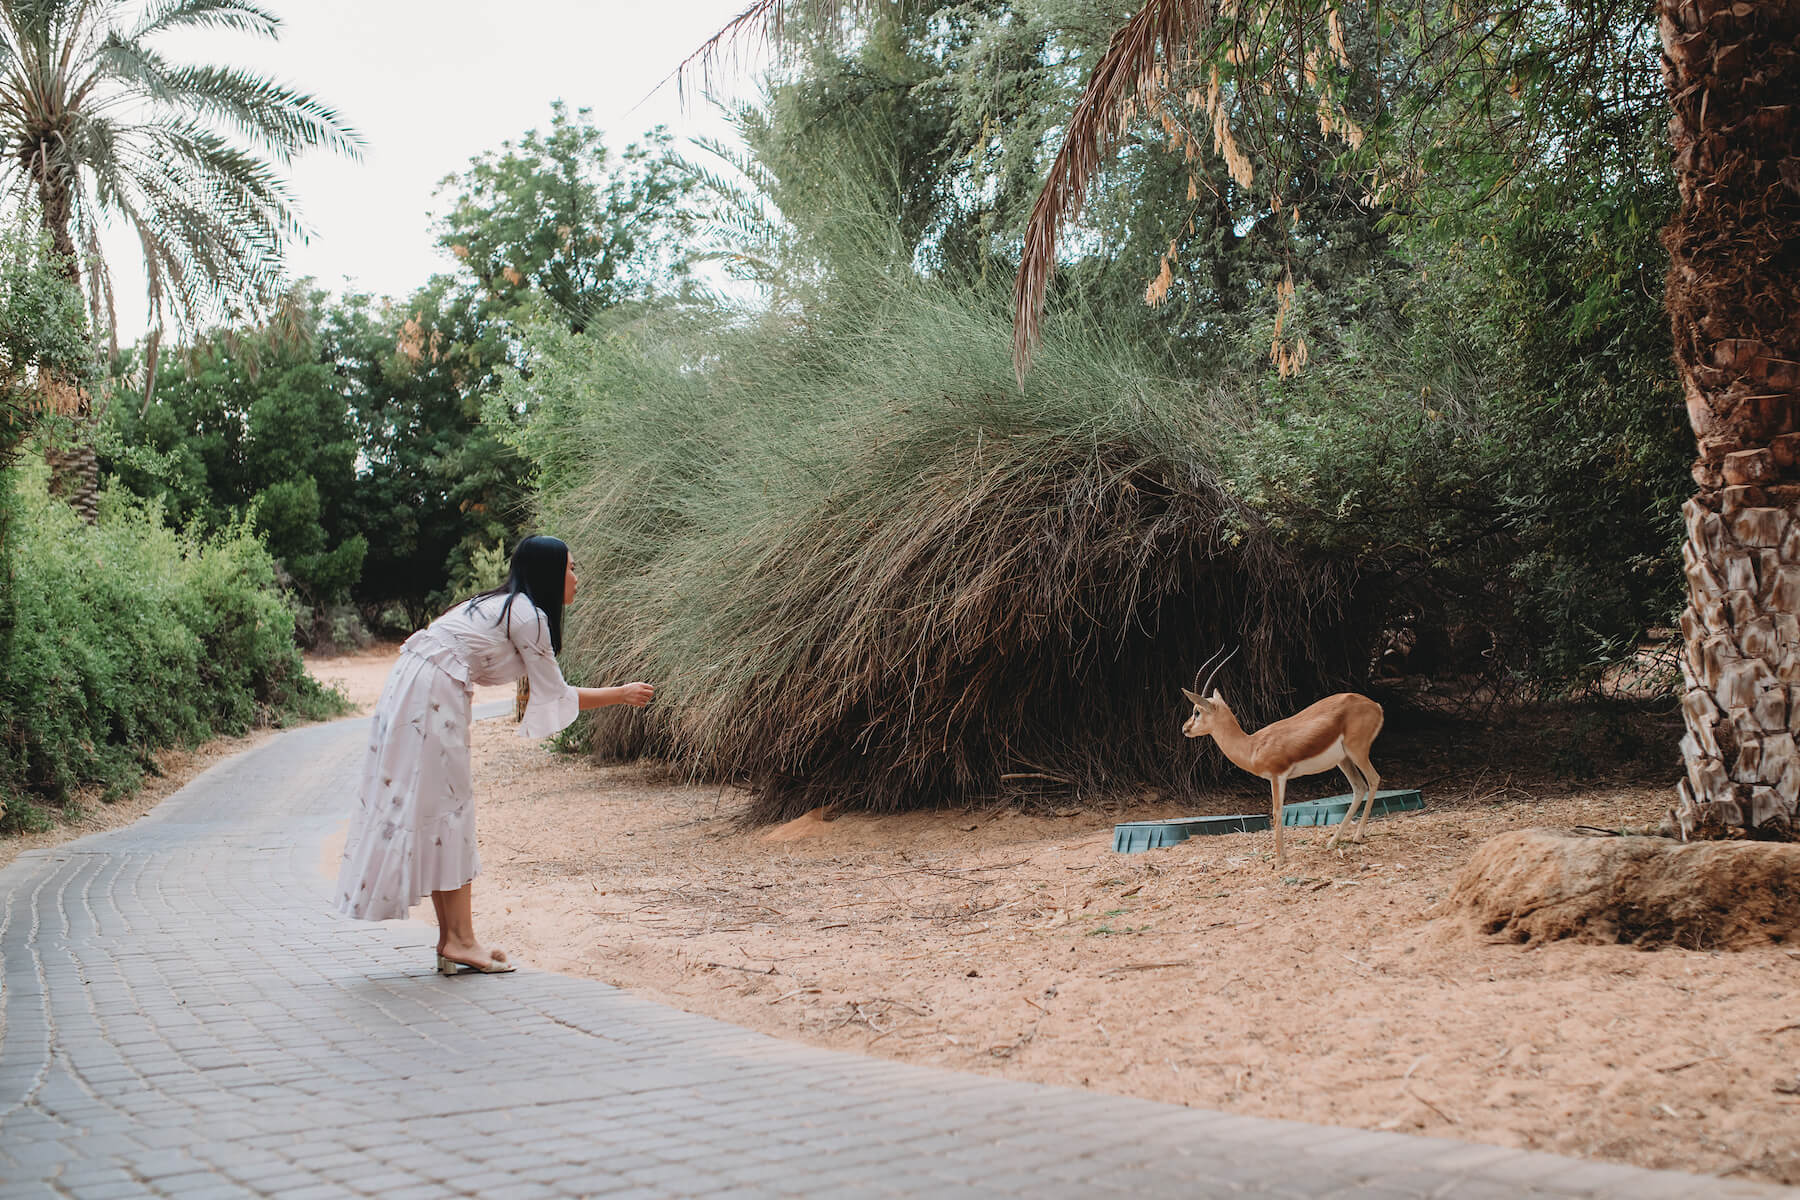 A women trying to get an animals attention in the Dubai desert in Dubai, United Arab Emirates